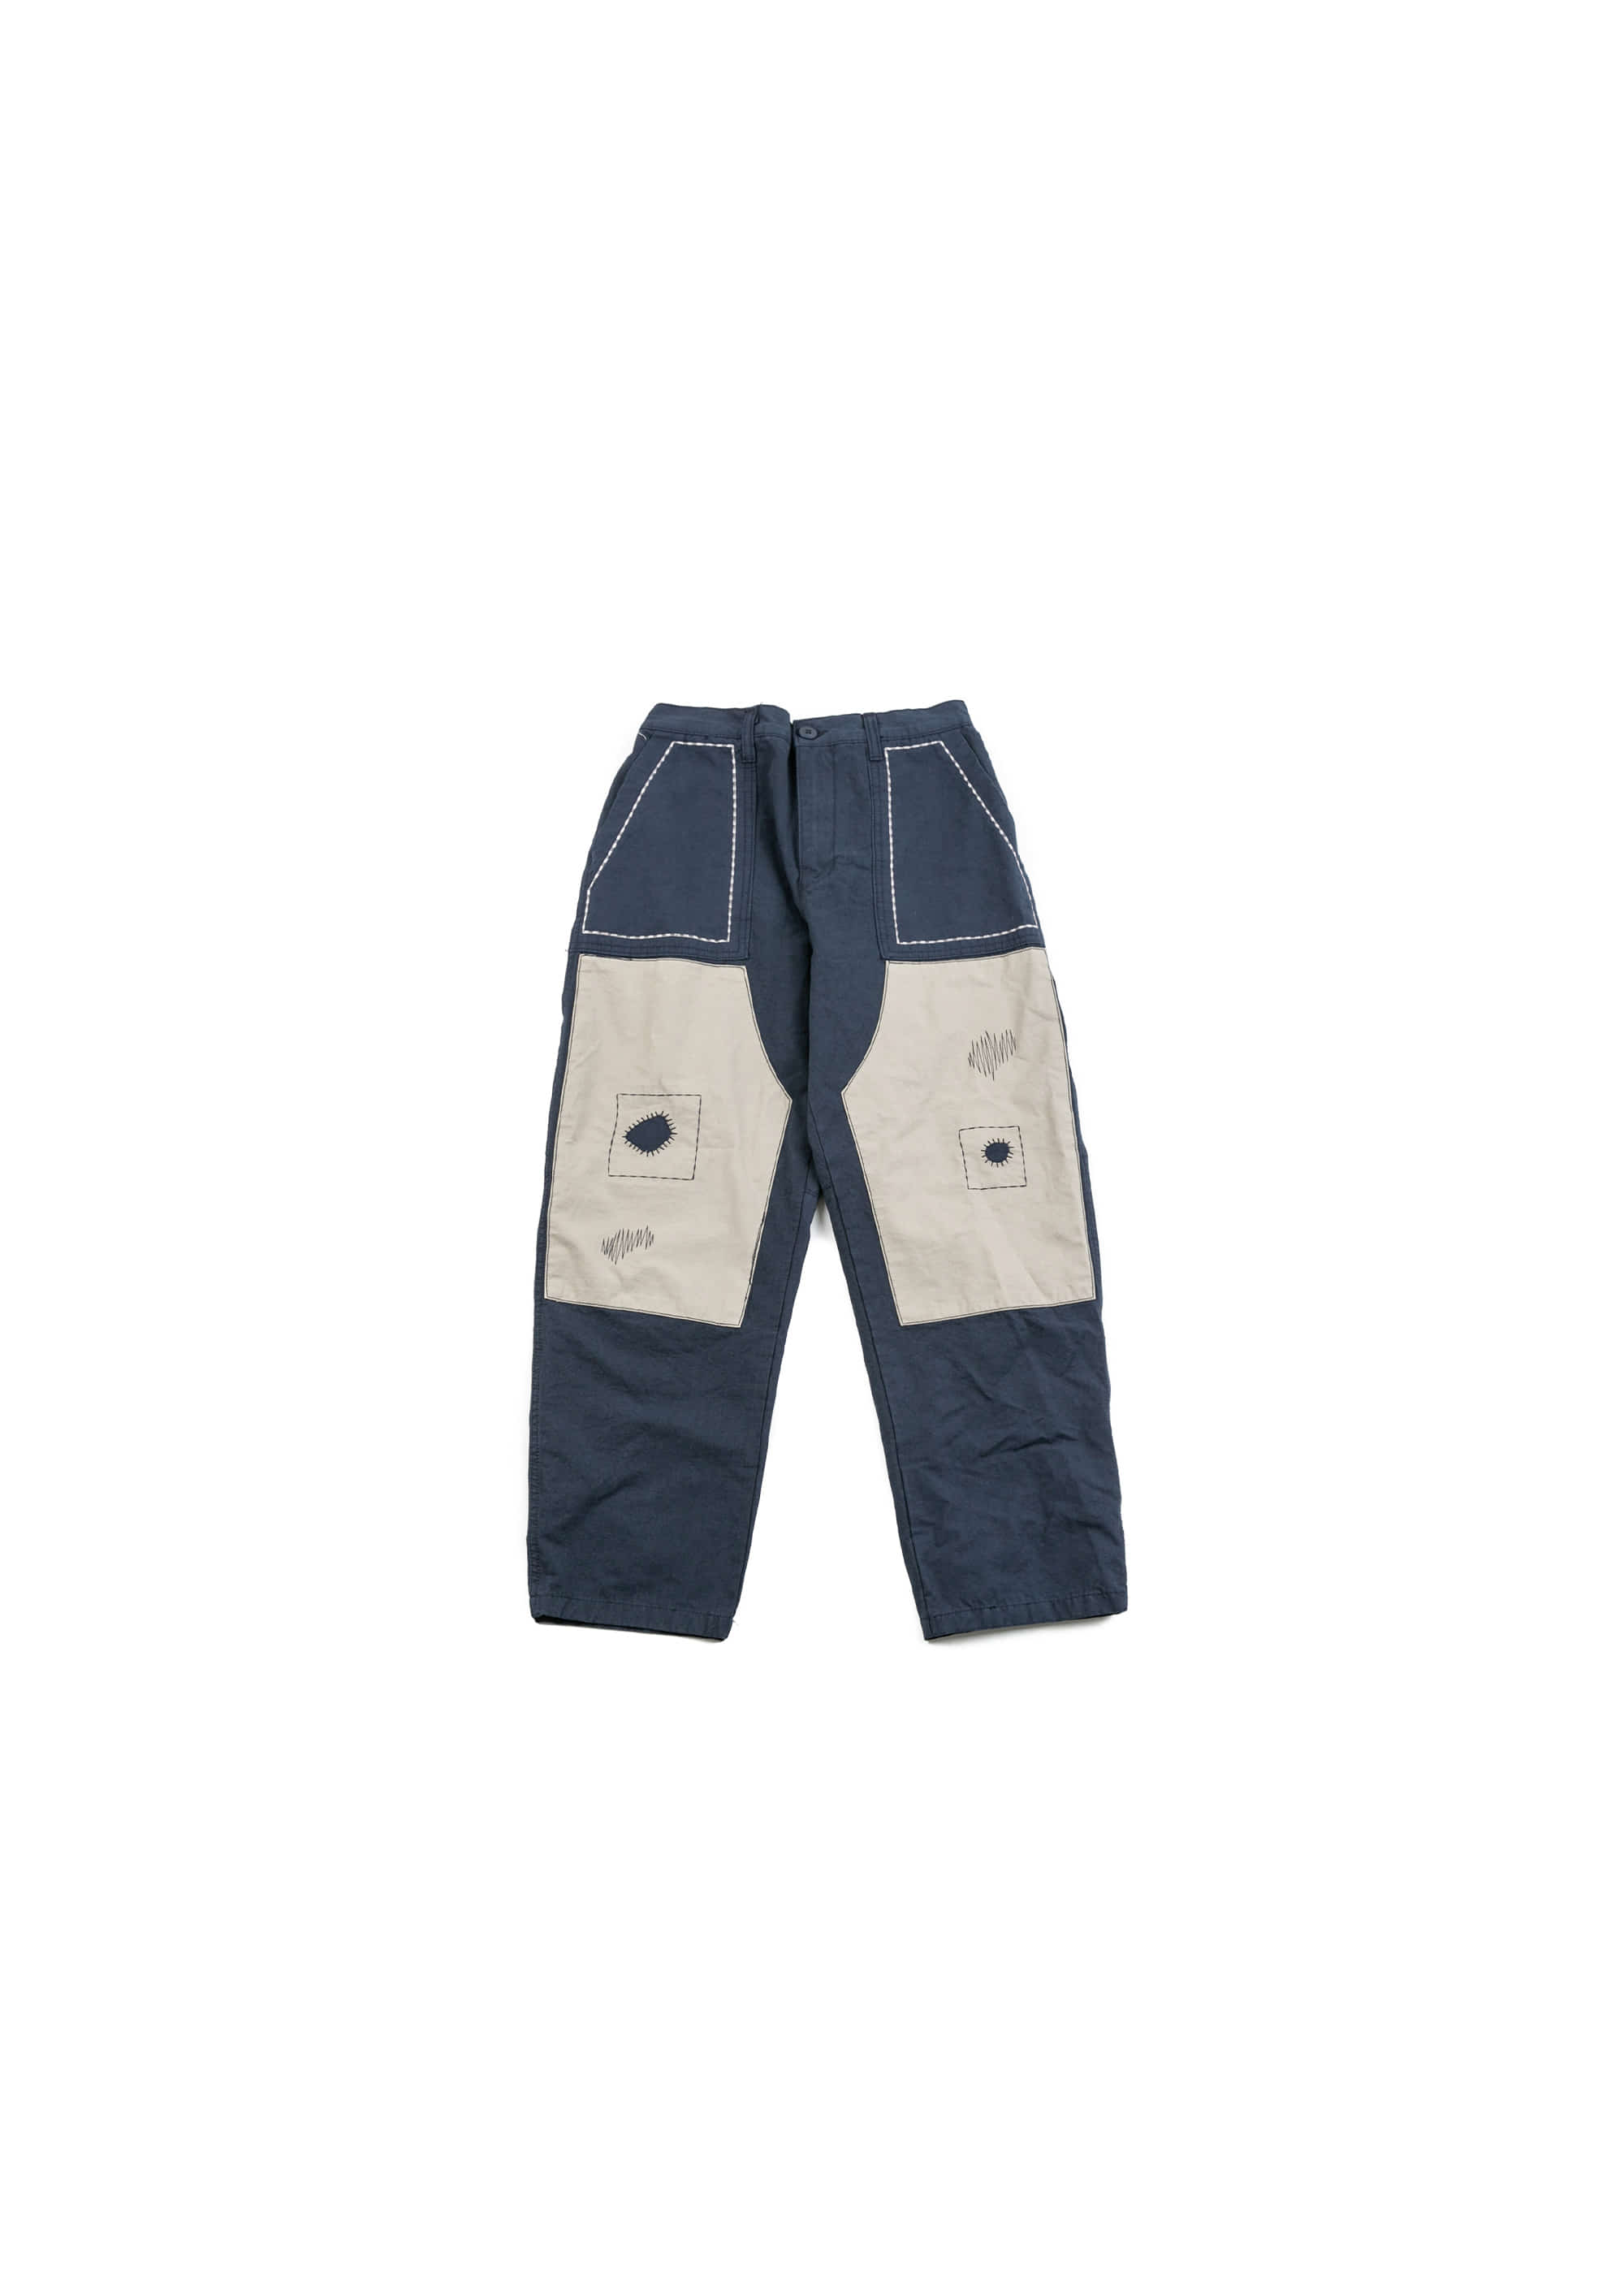 Build Patch Work Pants - Navy [ RE ]